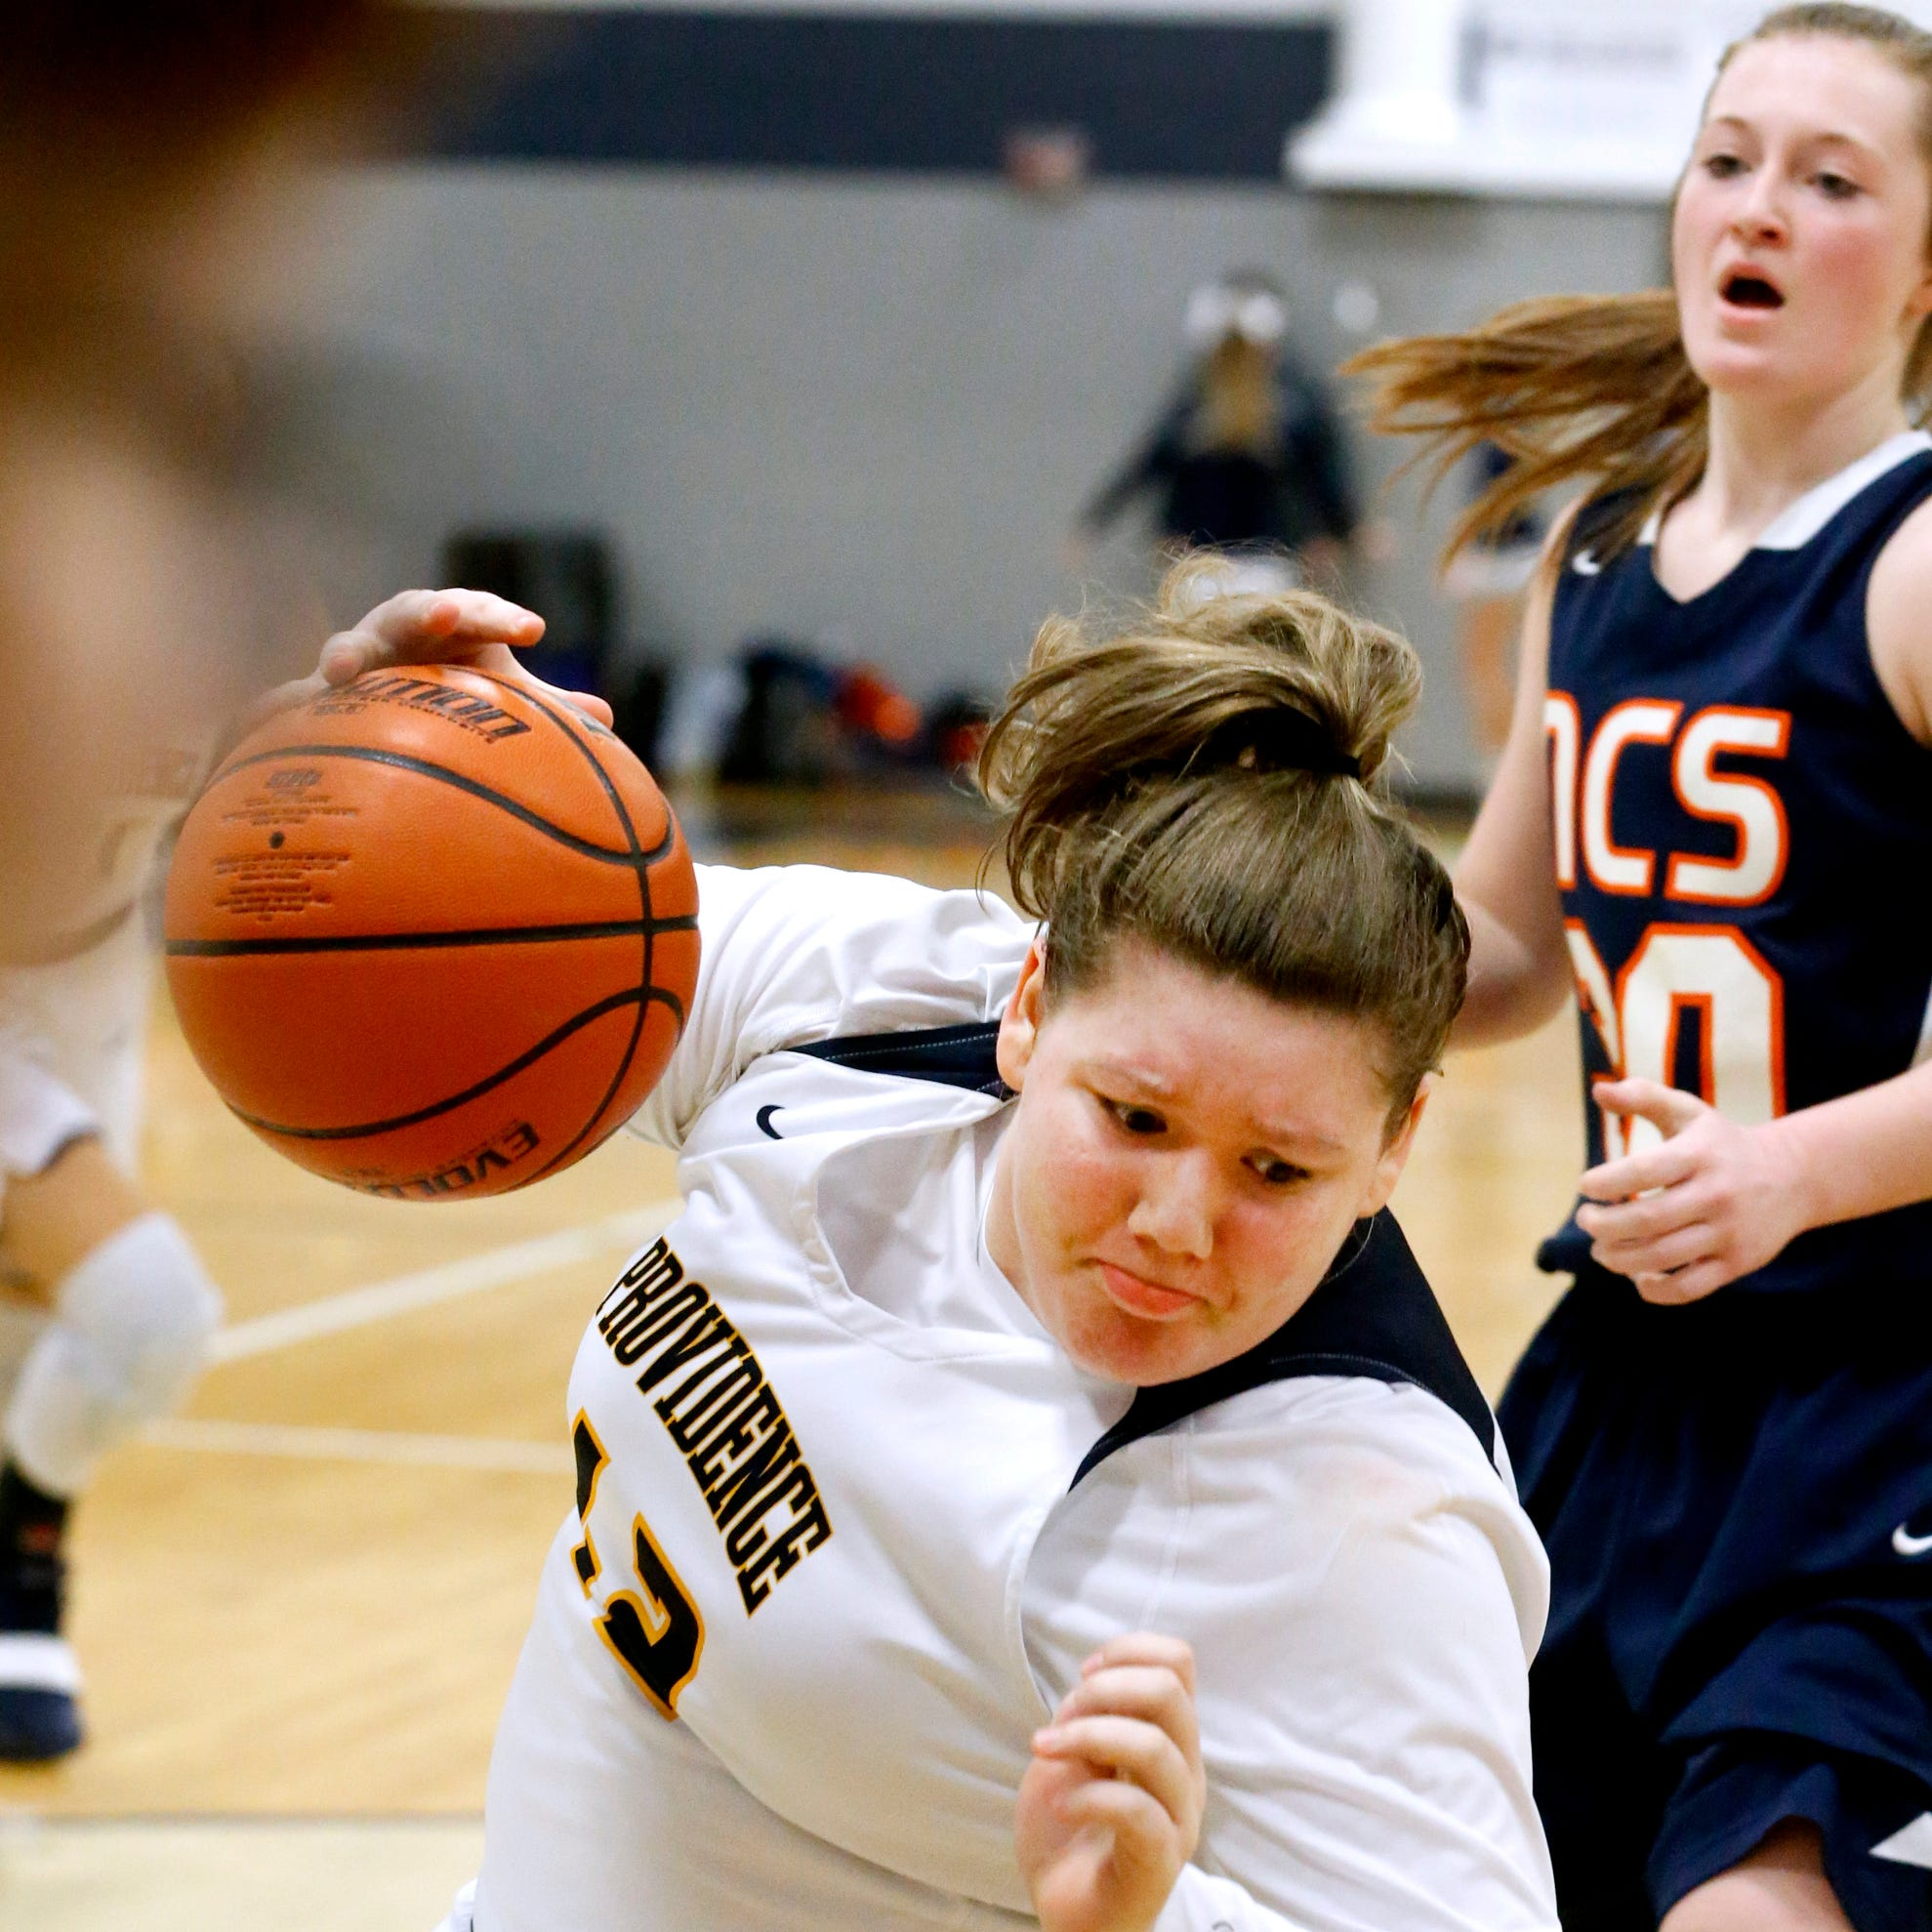 PCA's Sydney Gibson embraces sister's shadow, focuses on leading team to state